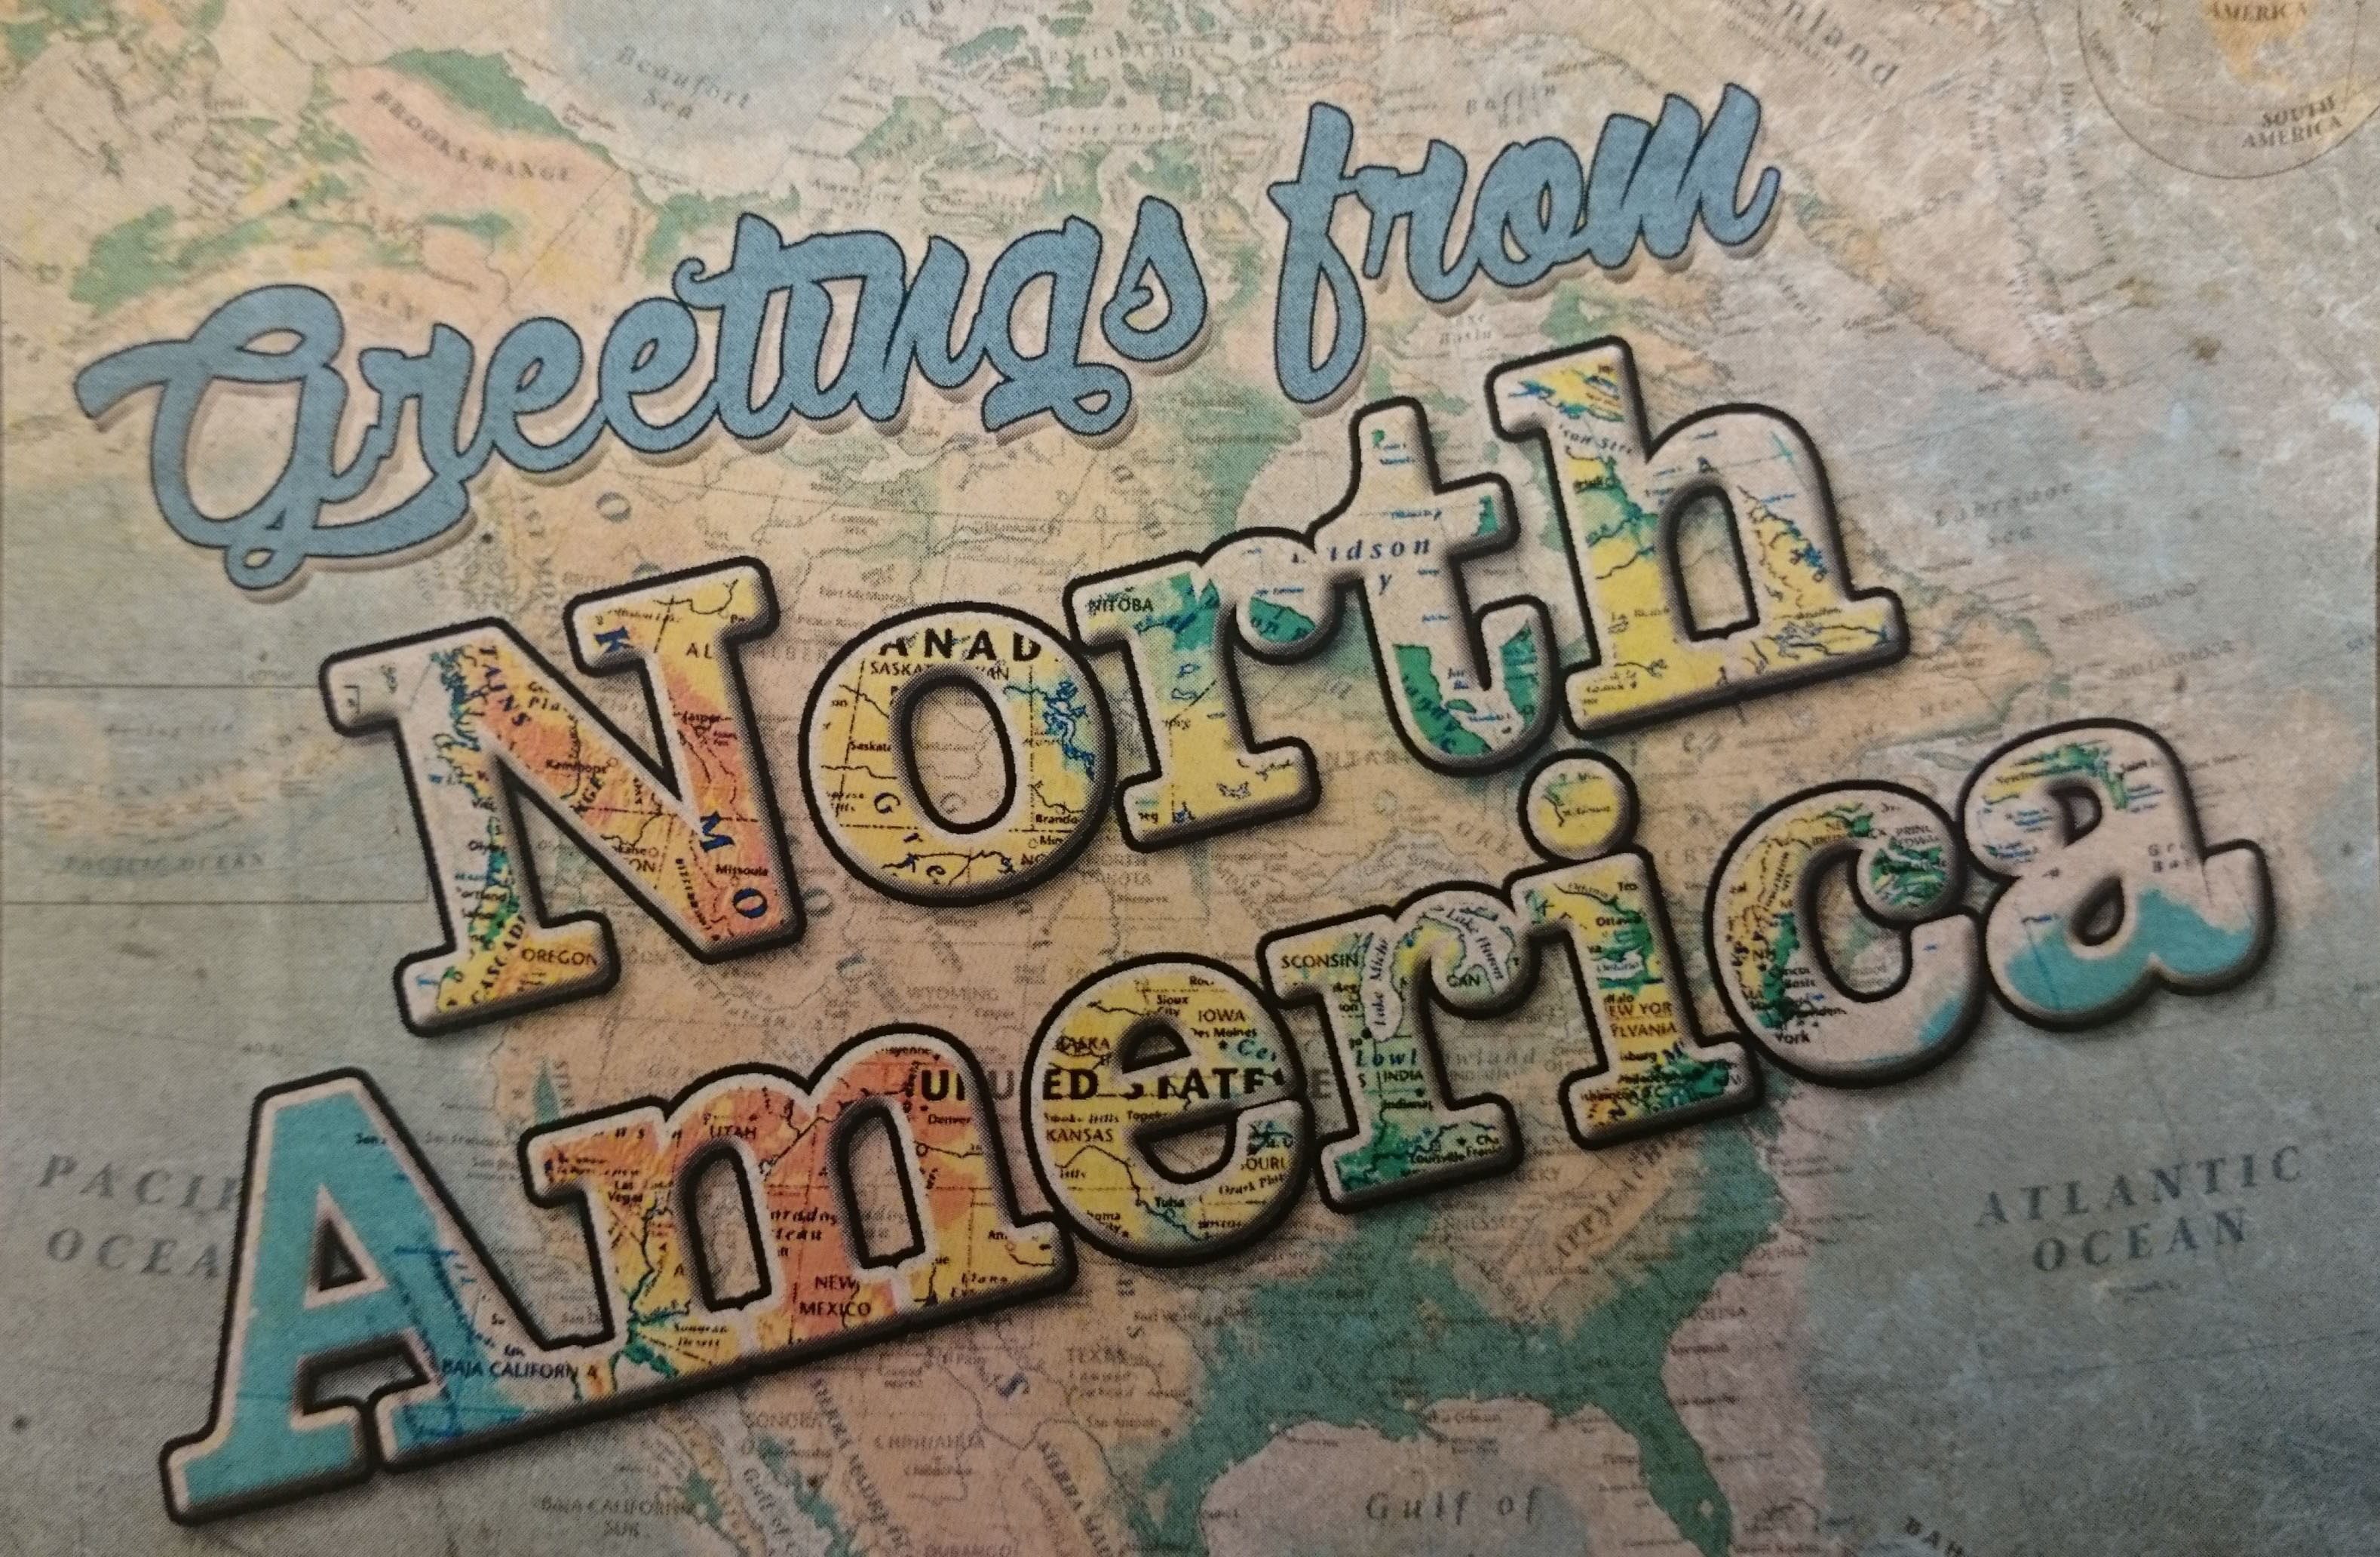 Greetings from North America postcard